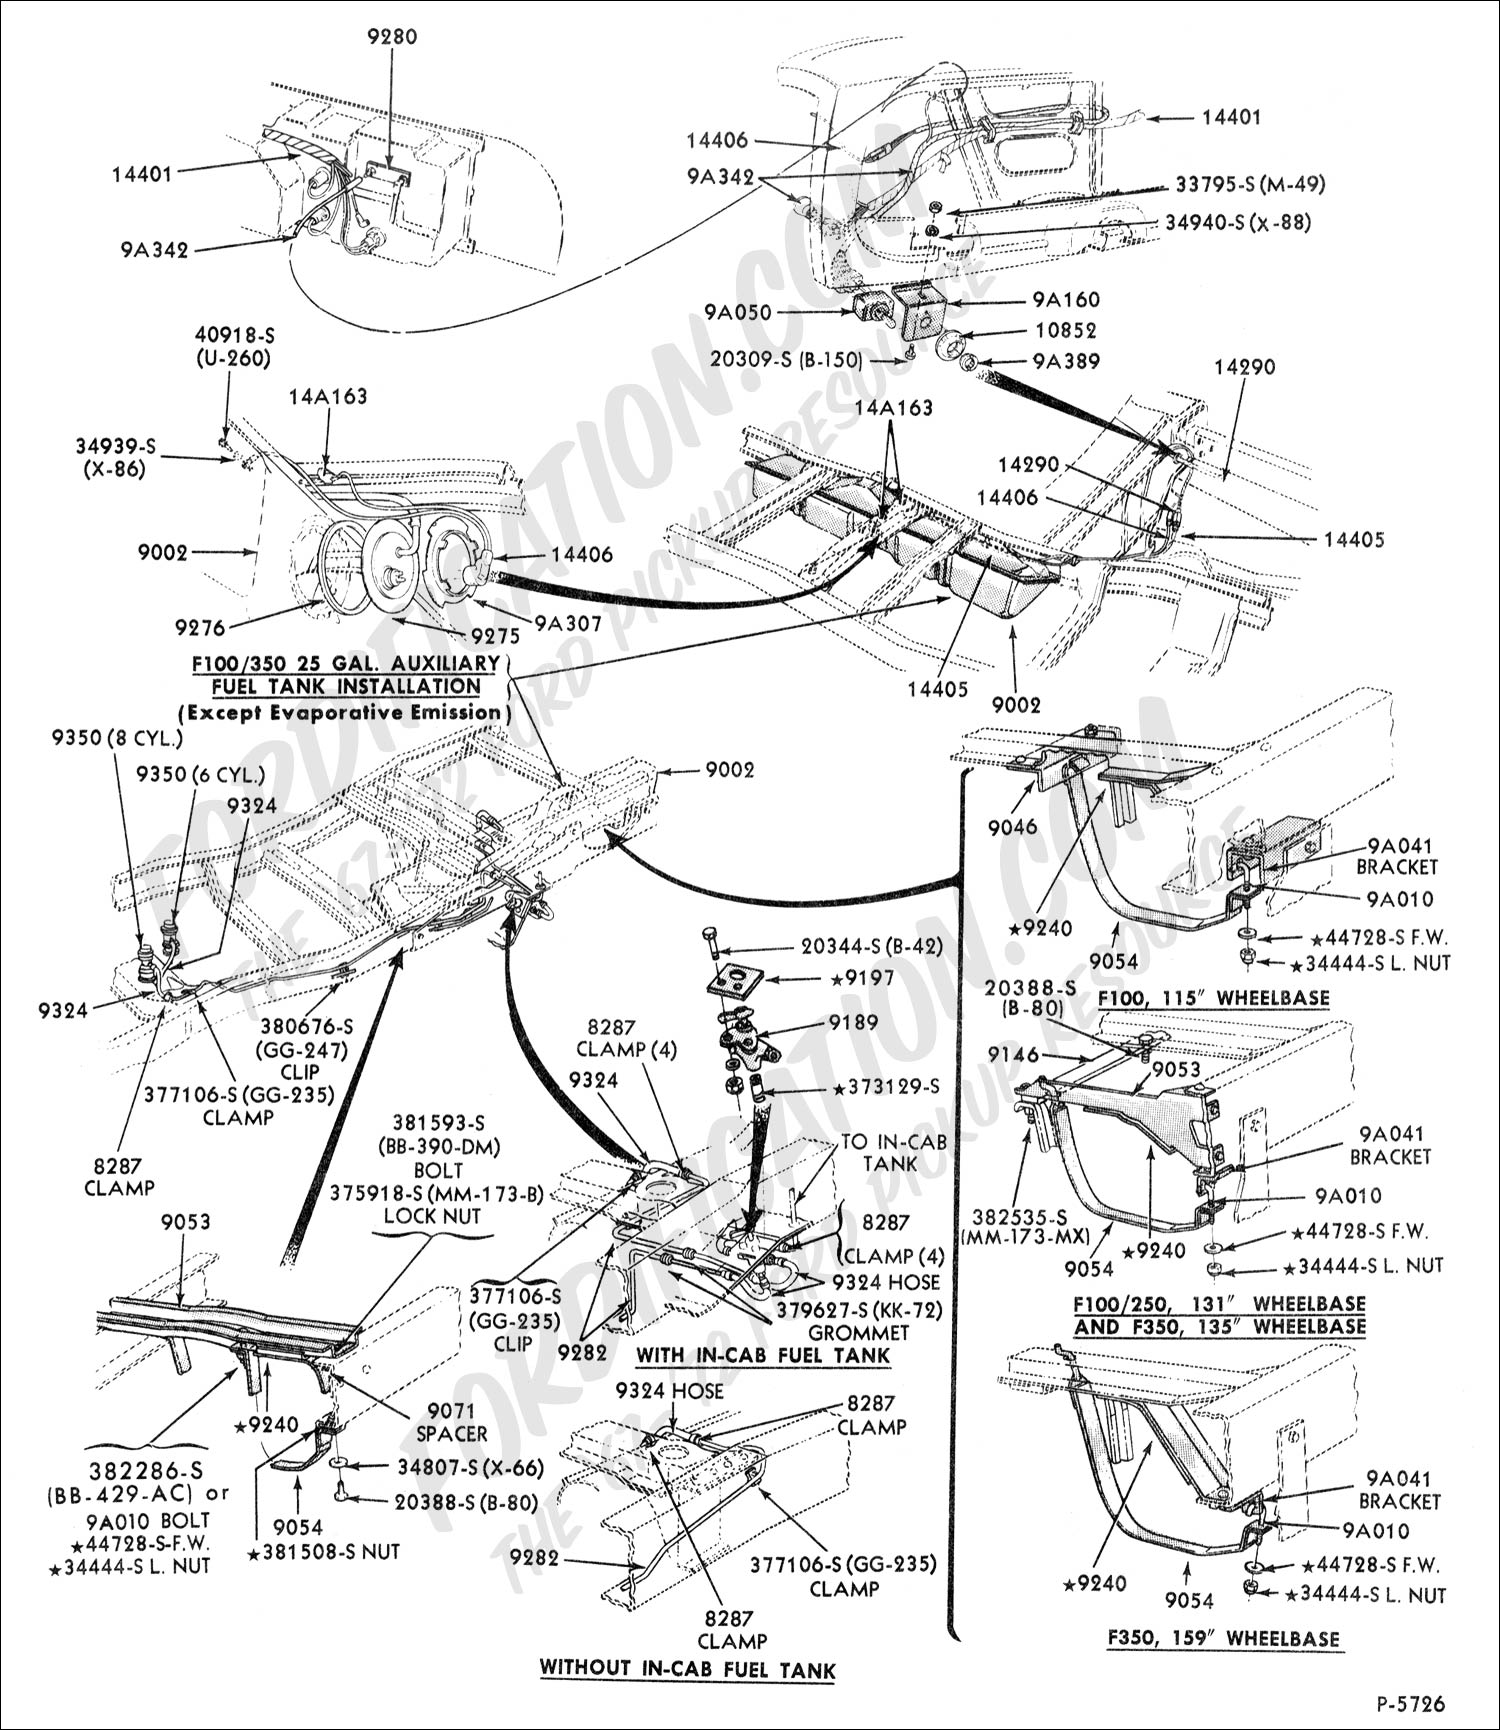 fueltank aux02 wiring diagram for 2001 ford truck,diagram free download printable,2004 Ford F 250 Oem Wiring Harness